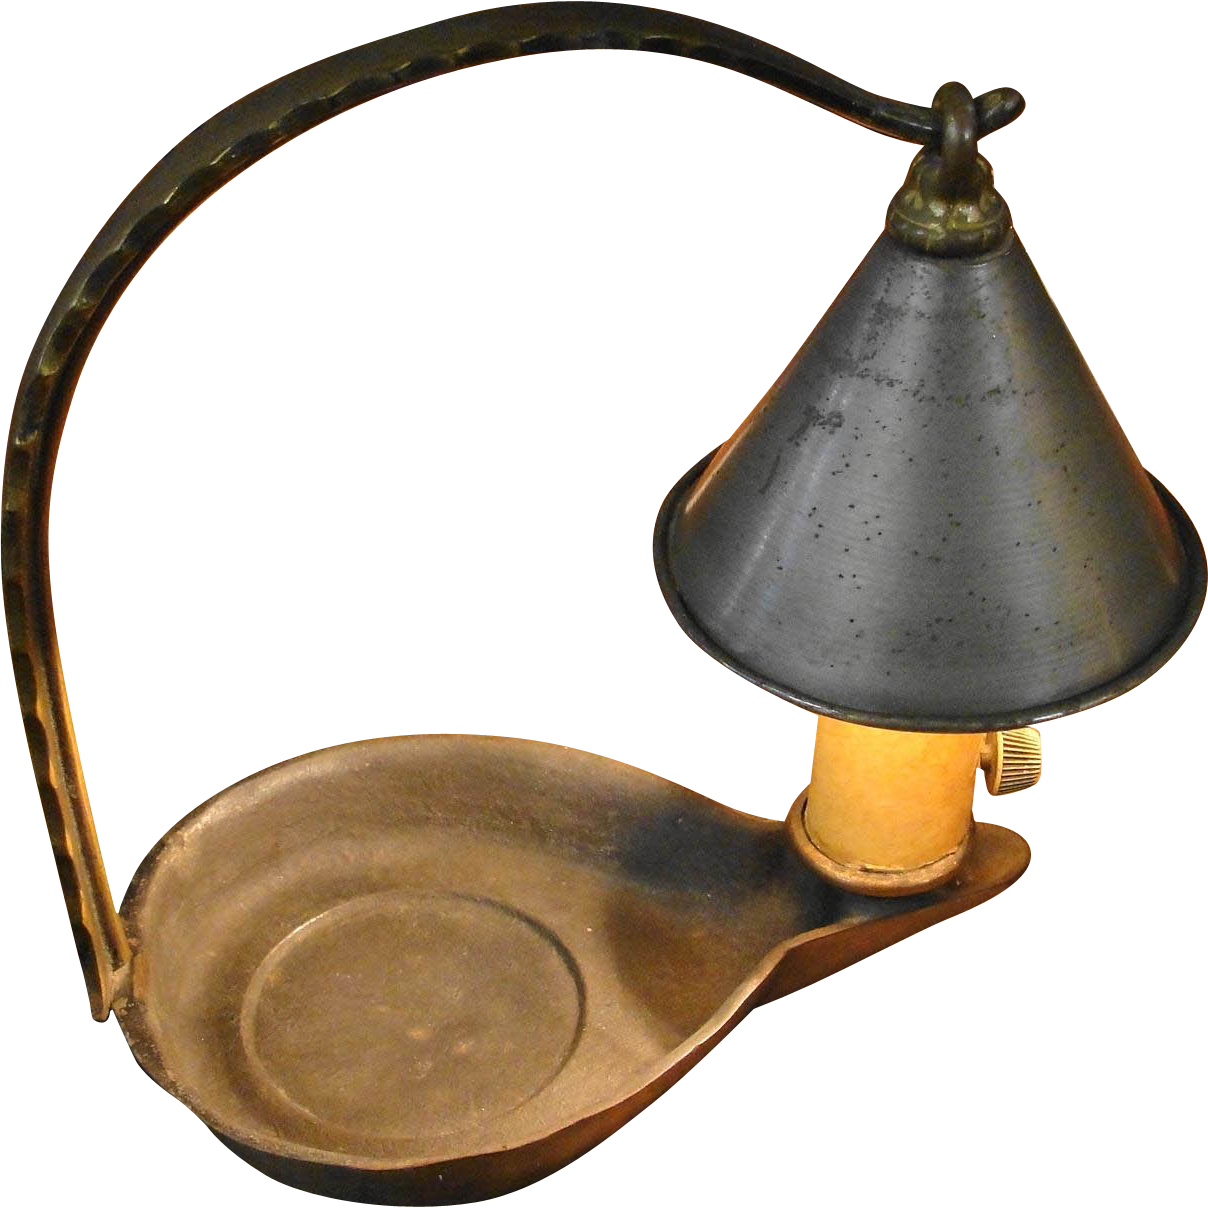 Metal Lamp Cone Shade: Small Vintage Storybook Lamp Light With Cone Shaped Shade